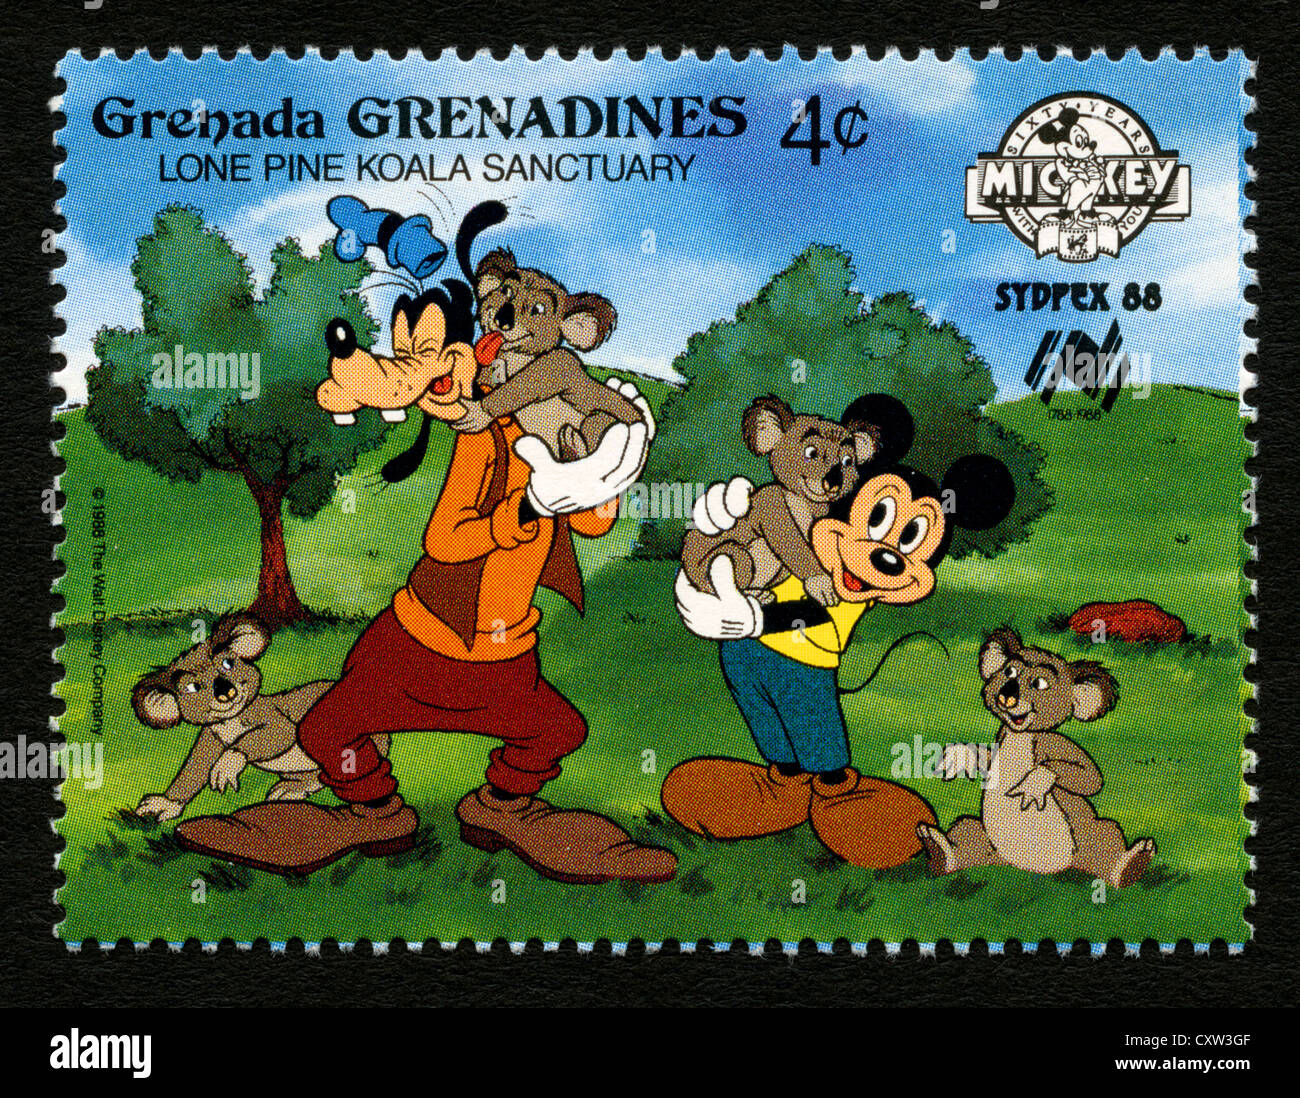 Grenada postage stamp - Disney cartoon characters - Mickey Mouse and Goofy - Stock Image